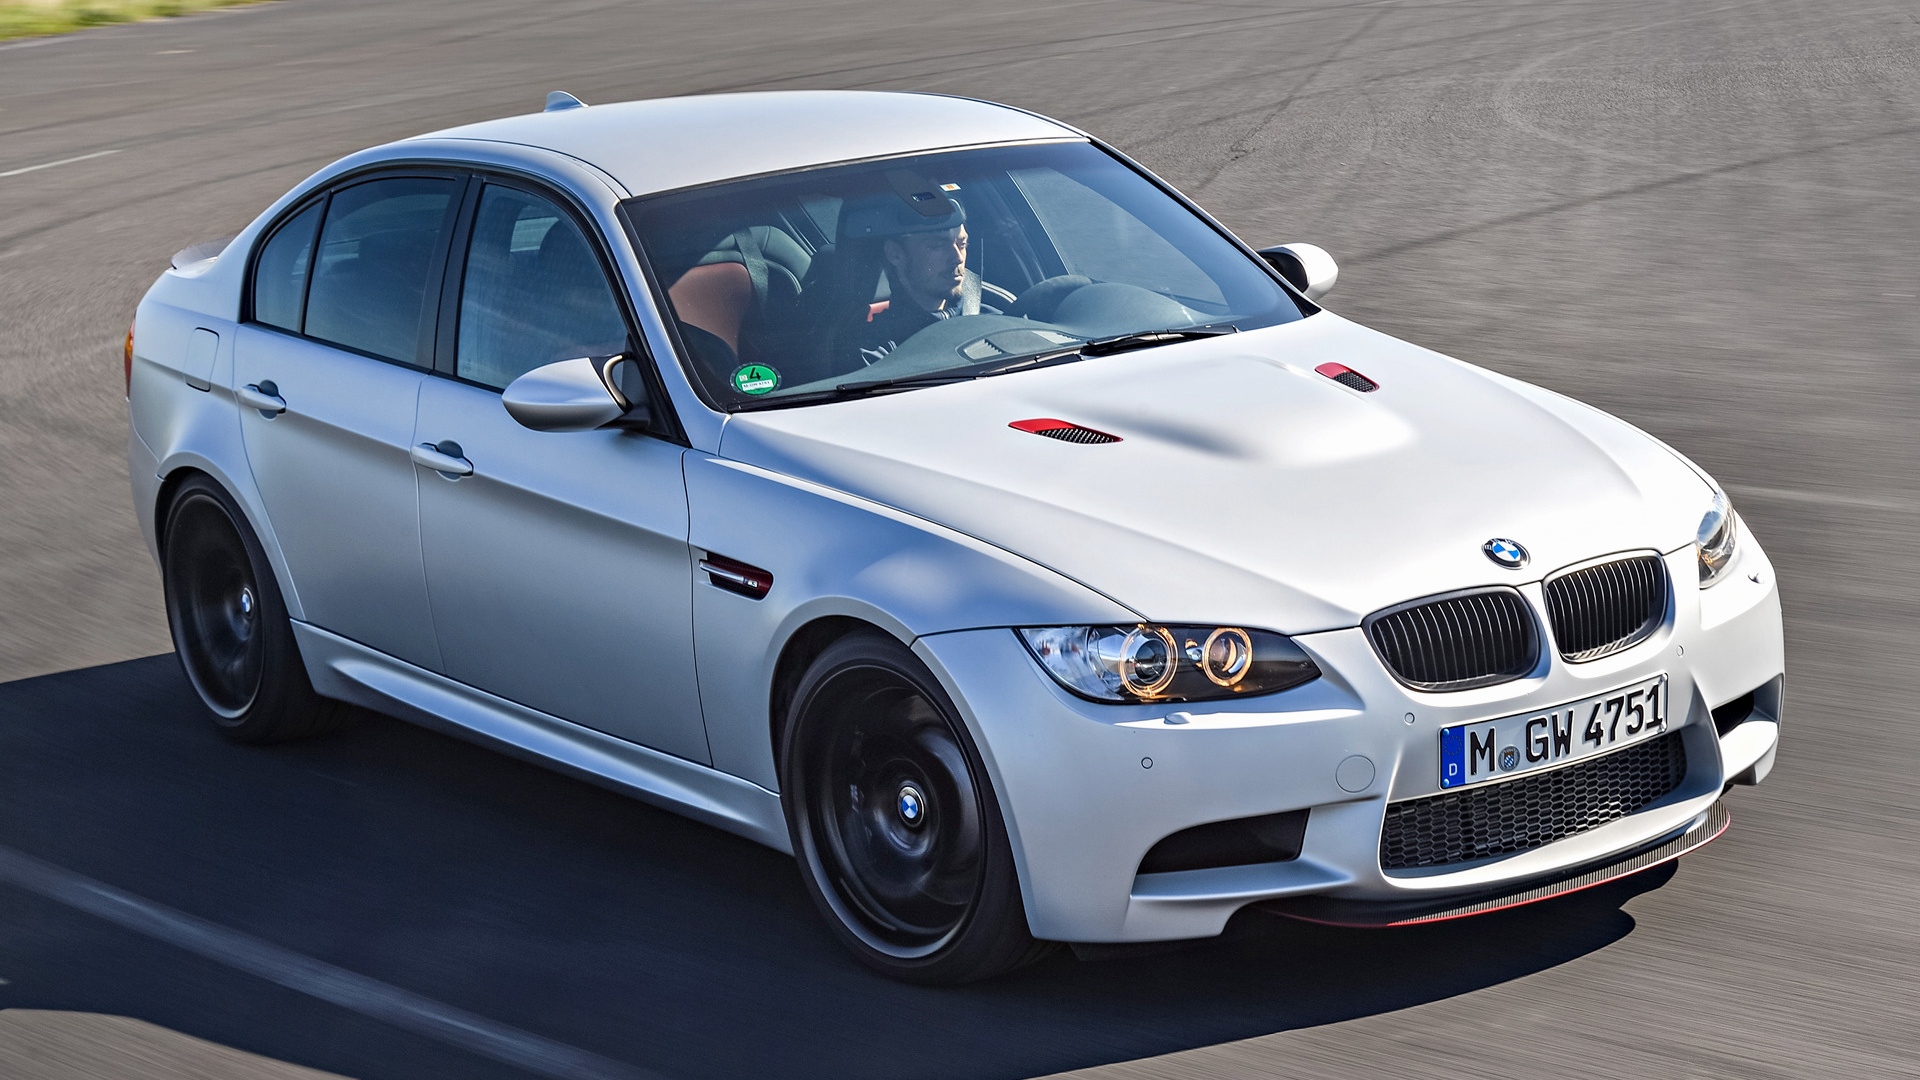 BMW M3 CRT 2011 Wallpapers And HD Images